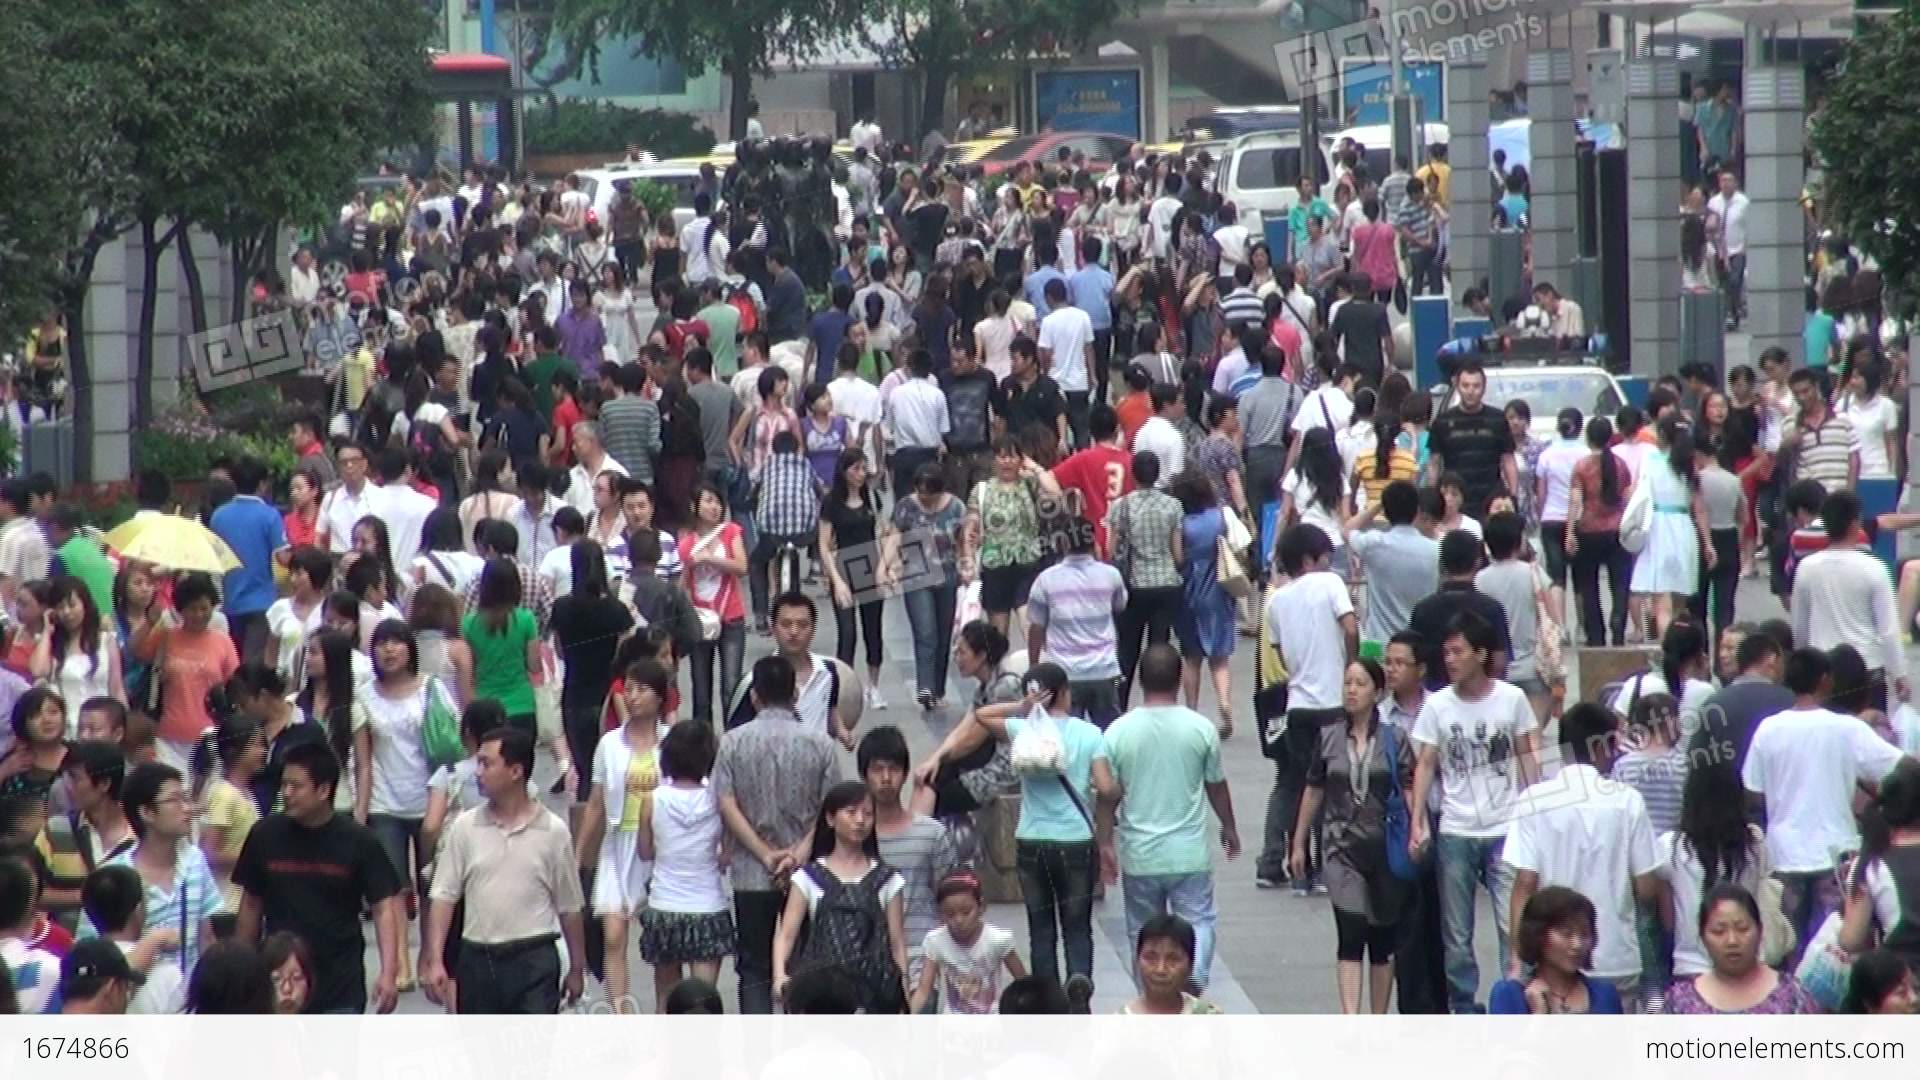 crowded shopping mall essay Such a large edifice as a shopping mall will make our community more crowded 2006 20:25 pm toefl essay: a large shopping as a shopping mall will make.